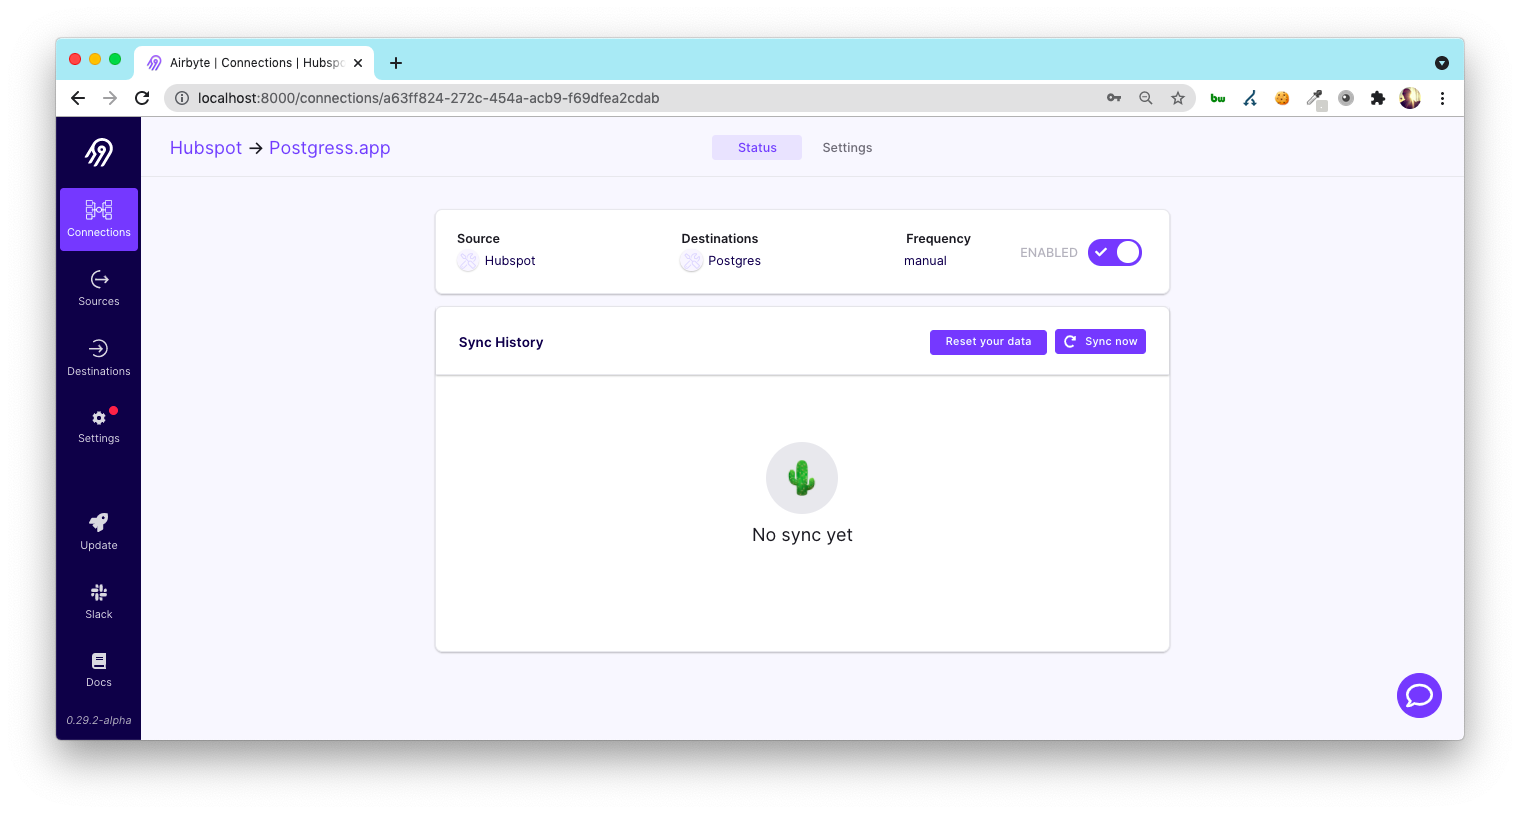 Setting up the first sync with Airbyte